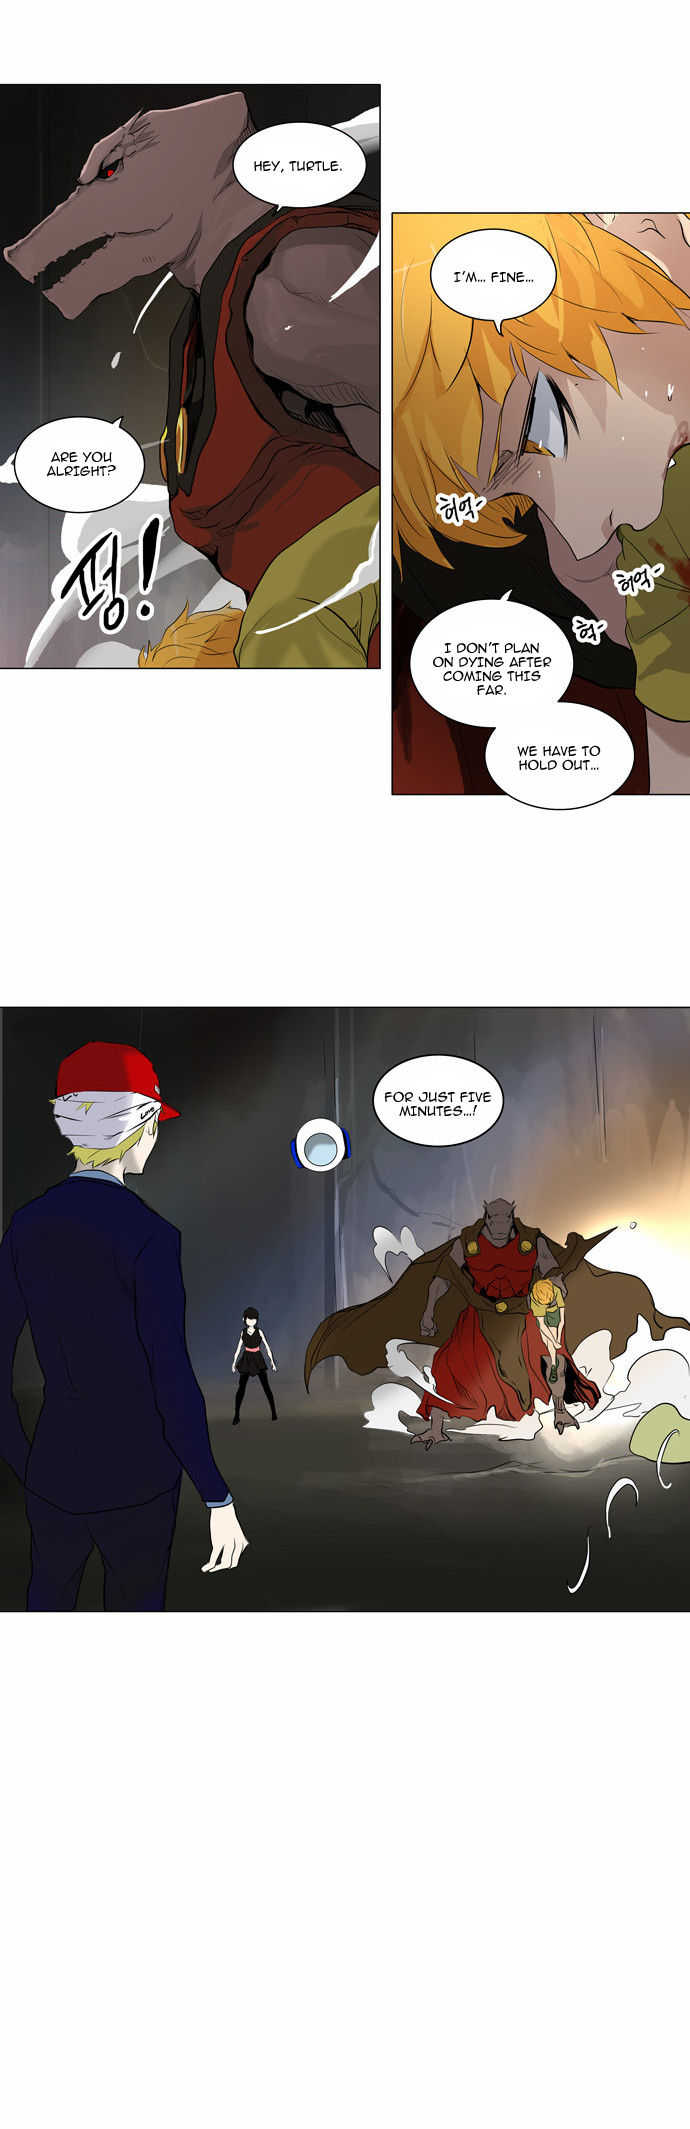 Tower of God  Season 2 94 Page 2